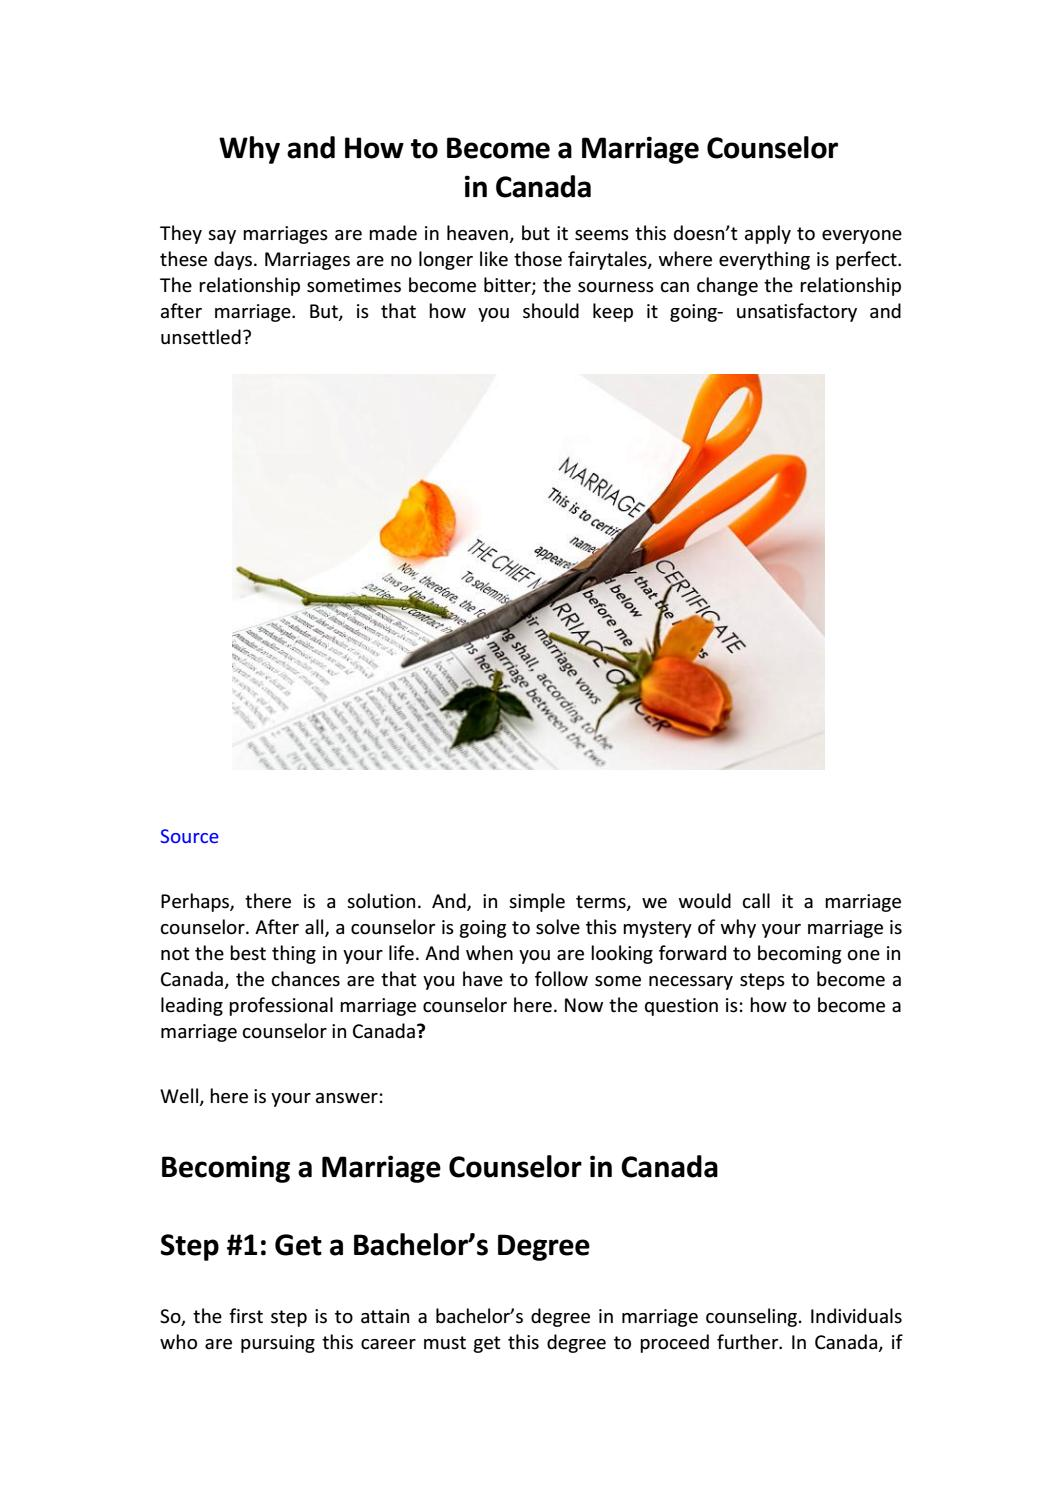 Why And How To Become A Marriage Counselor In Canada By The Ottawa